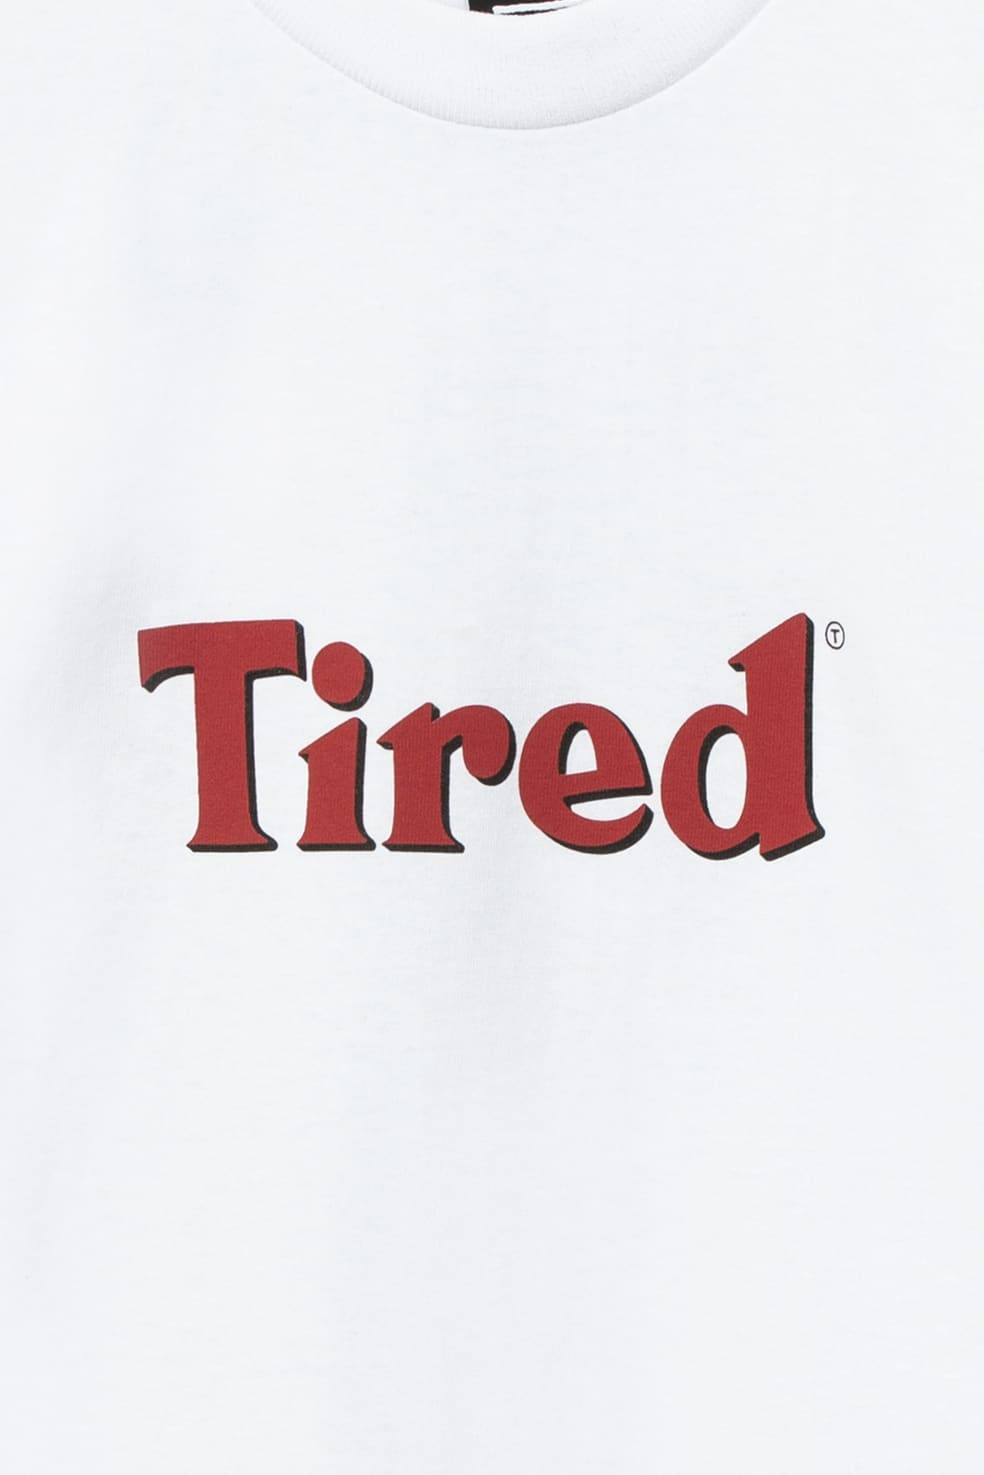 Tired Bloody Tired T-Shirt - White | T-Shirt by Tired Skateboards 3